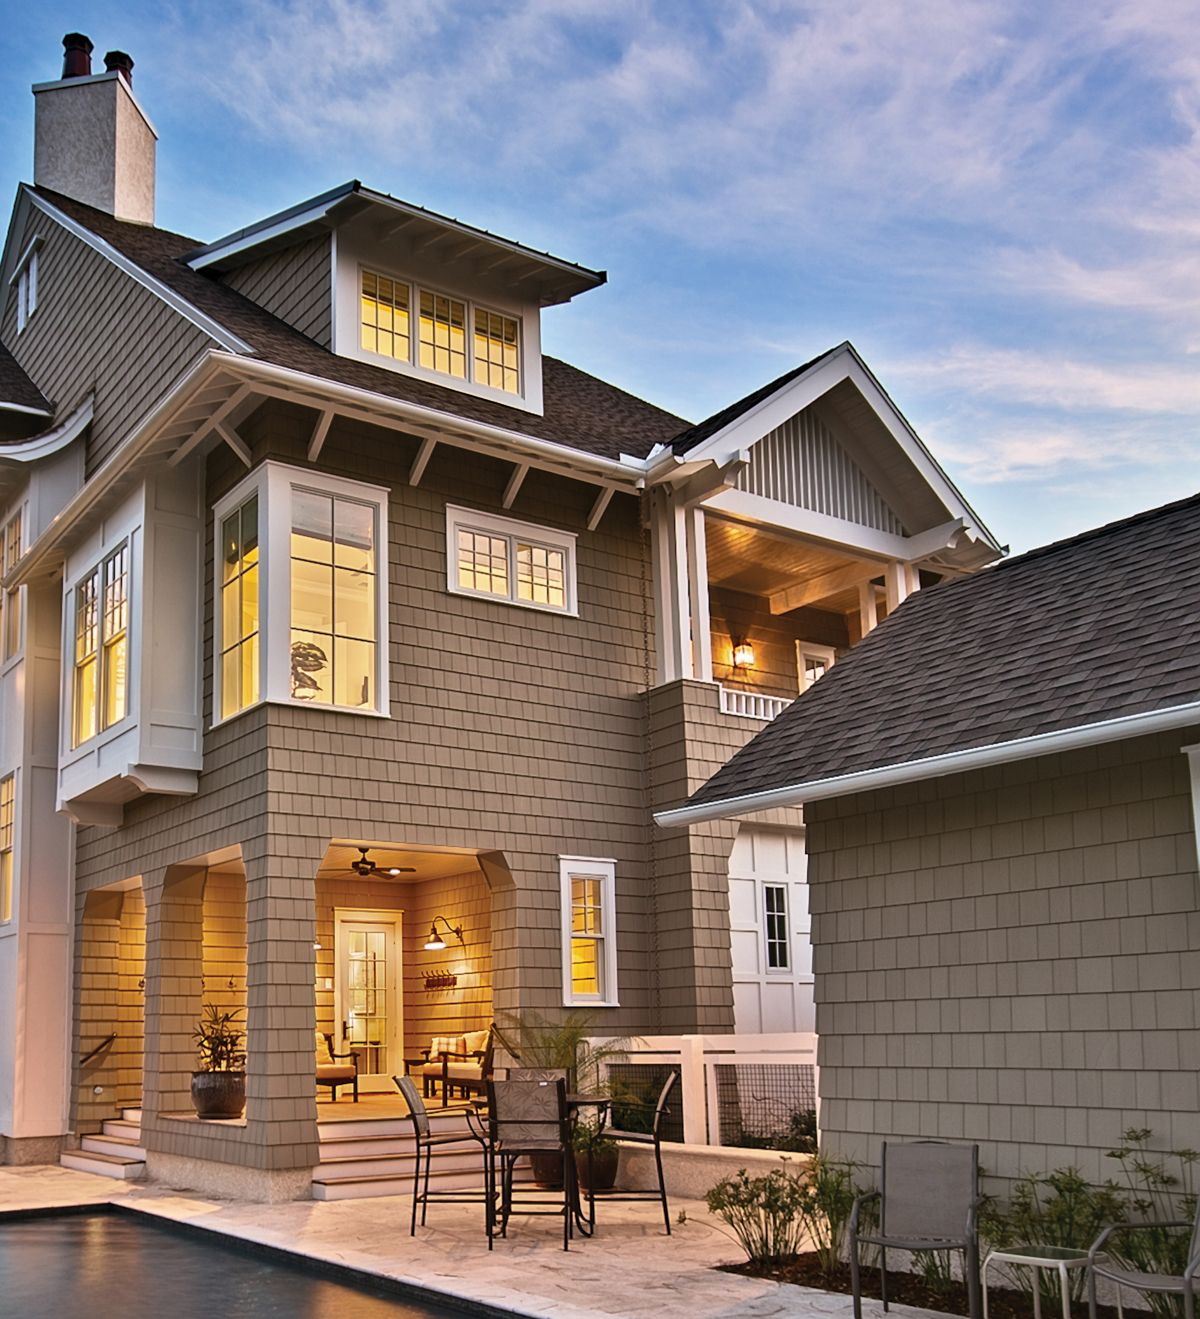 Home Product Design Exterior Simple Another Great View Of The Sierra Premium Shake Product . Decorating Inspiration